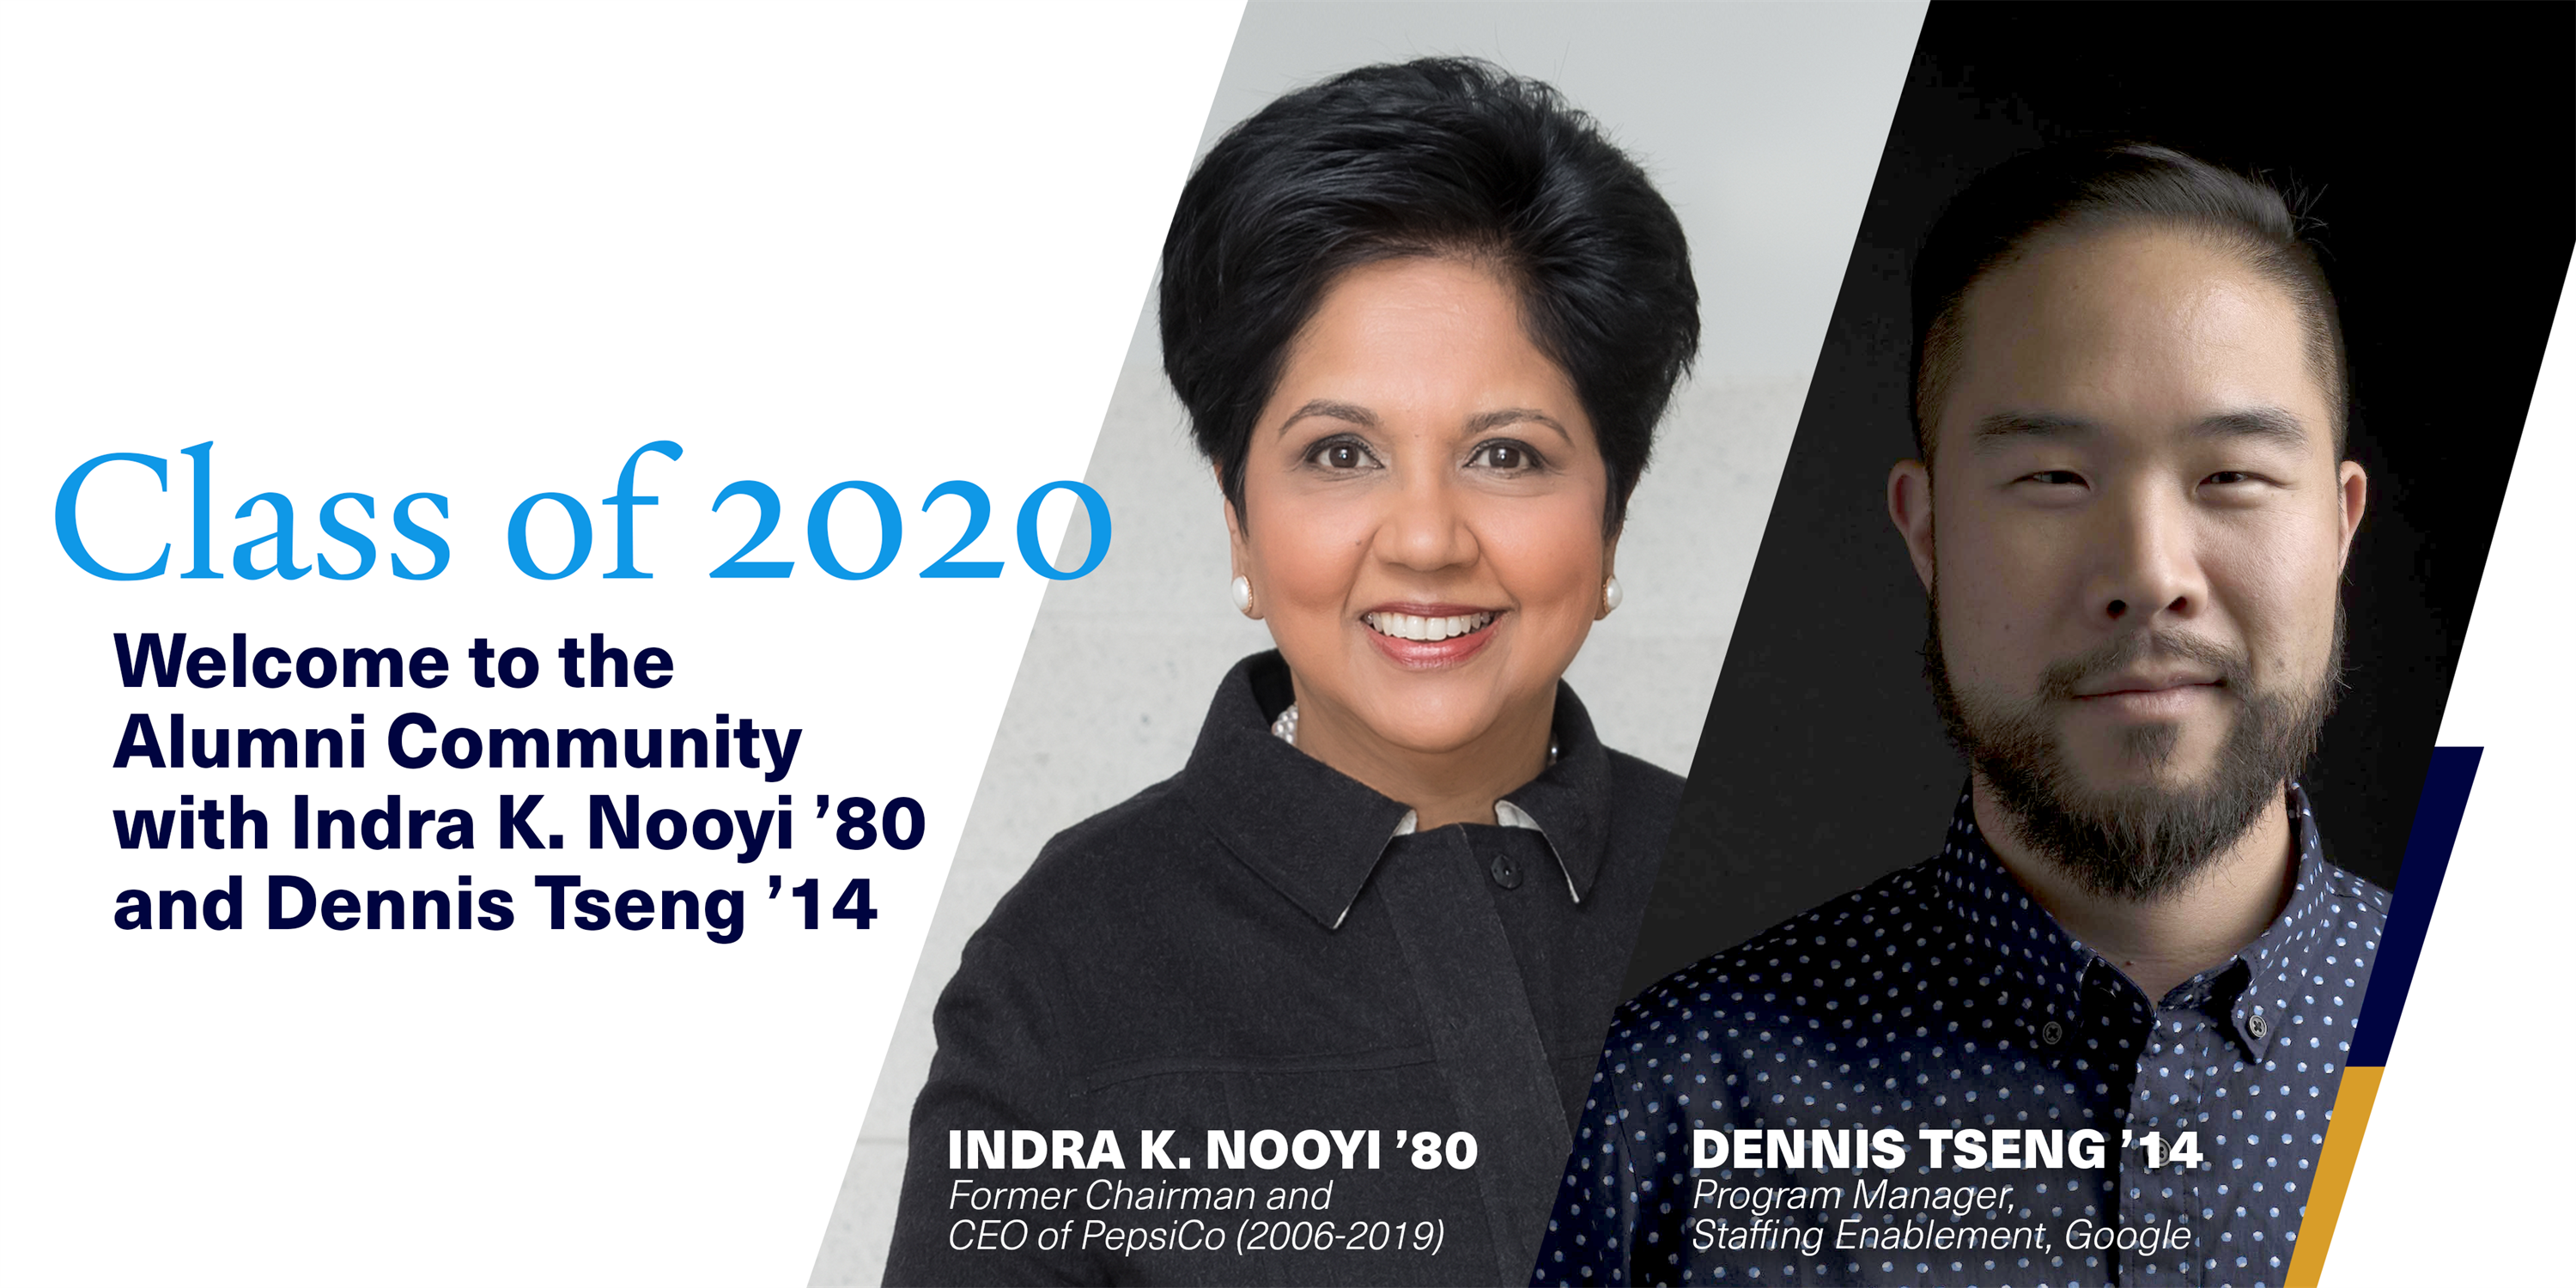 [Virtual] Class of 2020 Welcome to the Alumni Community with Indra K. Nooyi '80 and Dennis Tseng '14